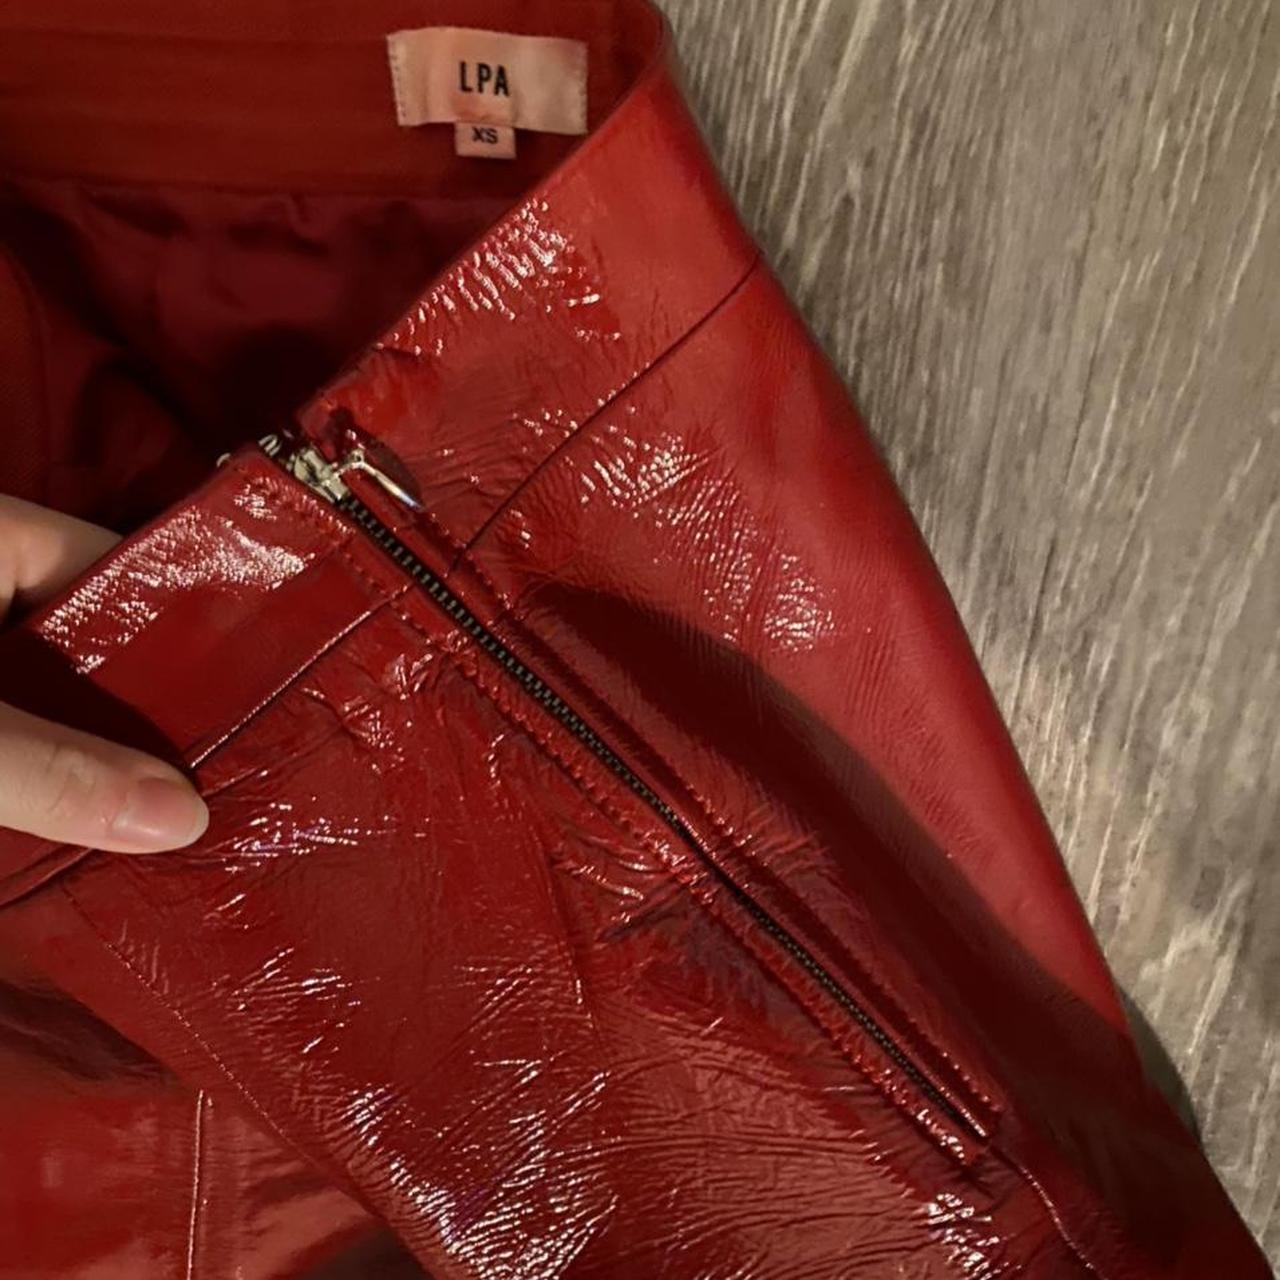 Product Image 1 - LPA Agata red leather pants!